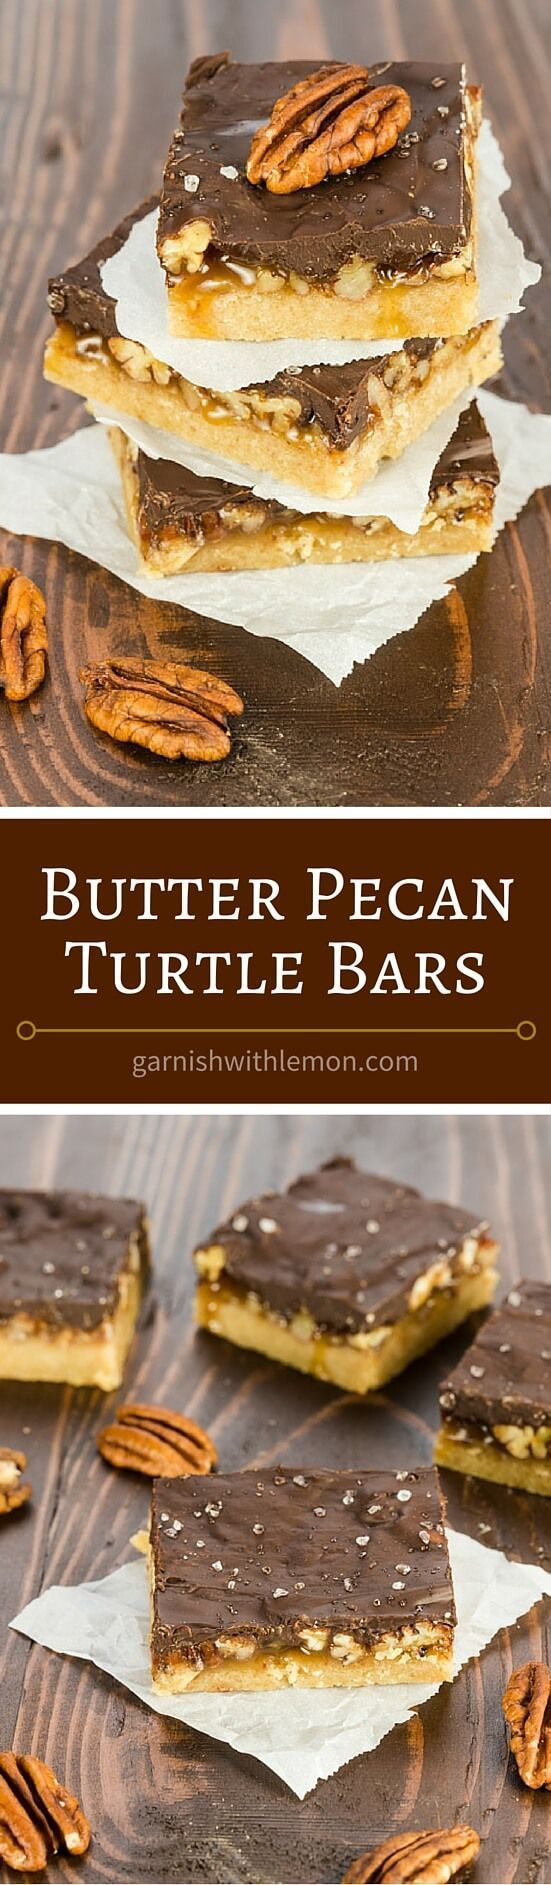 Butter Pecan Turtle Bars | Recipe | Simple, Butter and Turtles